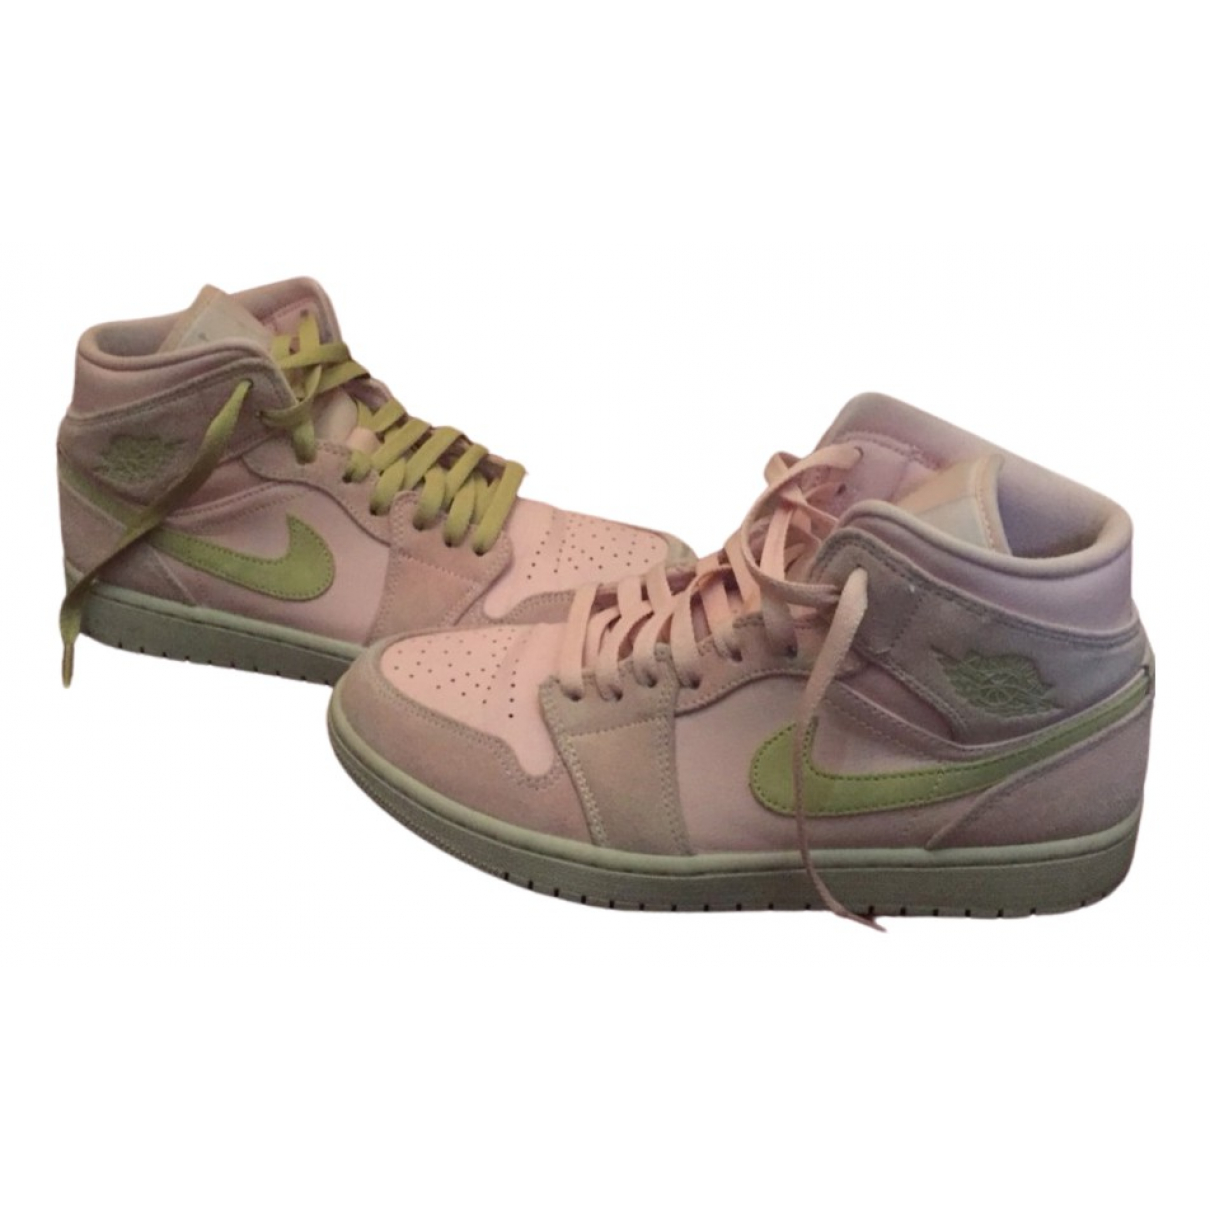 Jordan Air Jordan 1  Pink Leather Trainers for Men 42 EU